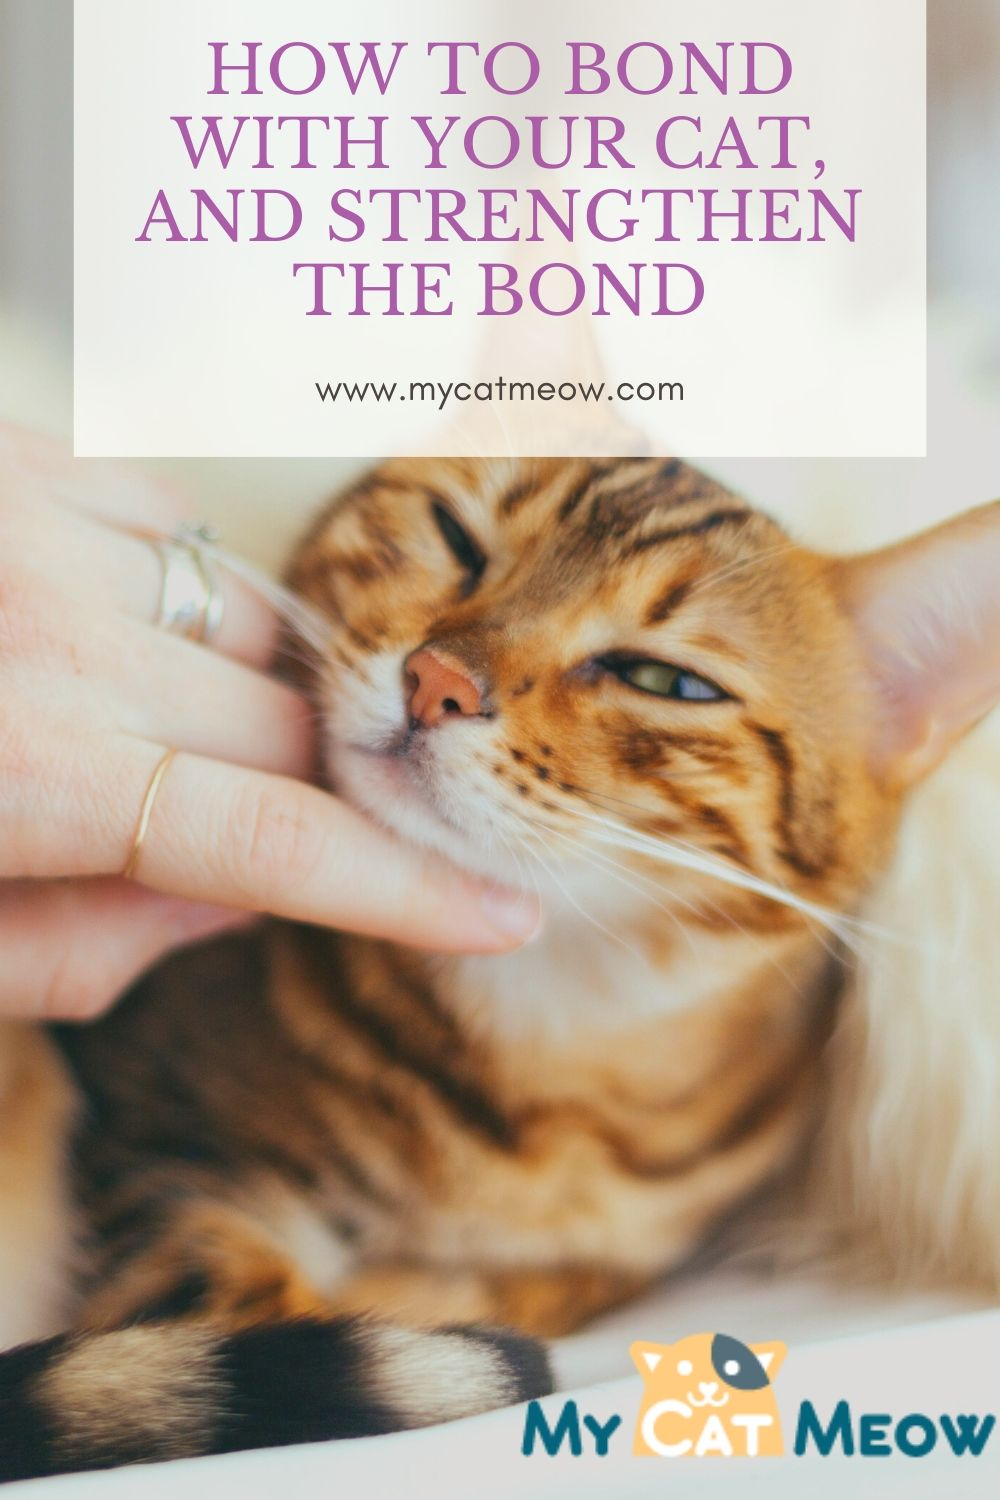 How to Bond with your Cat, and Strengthen your Bond for a Lifetime